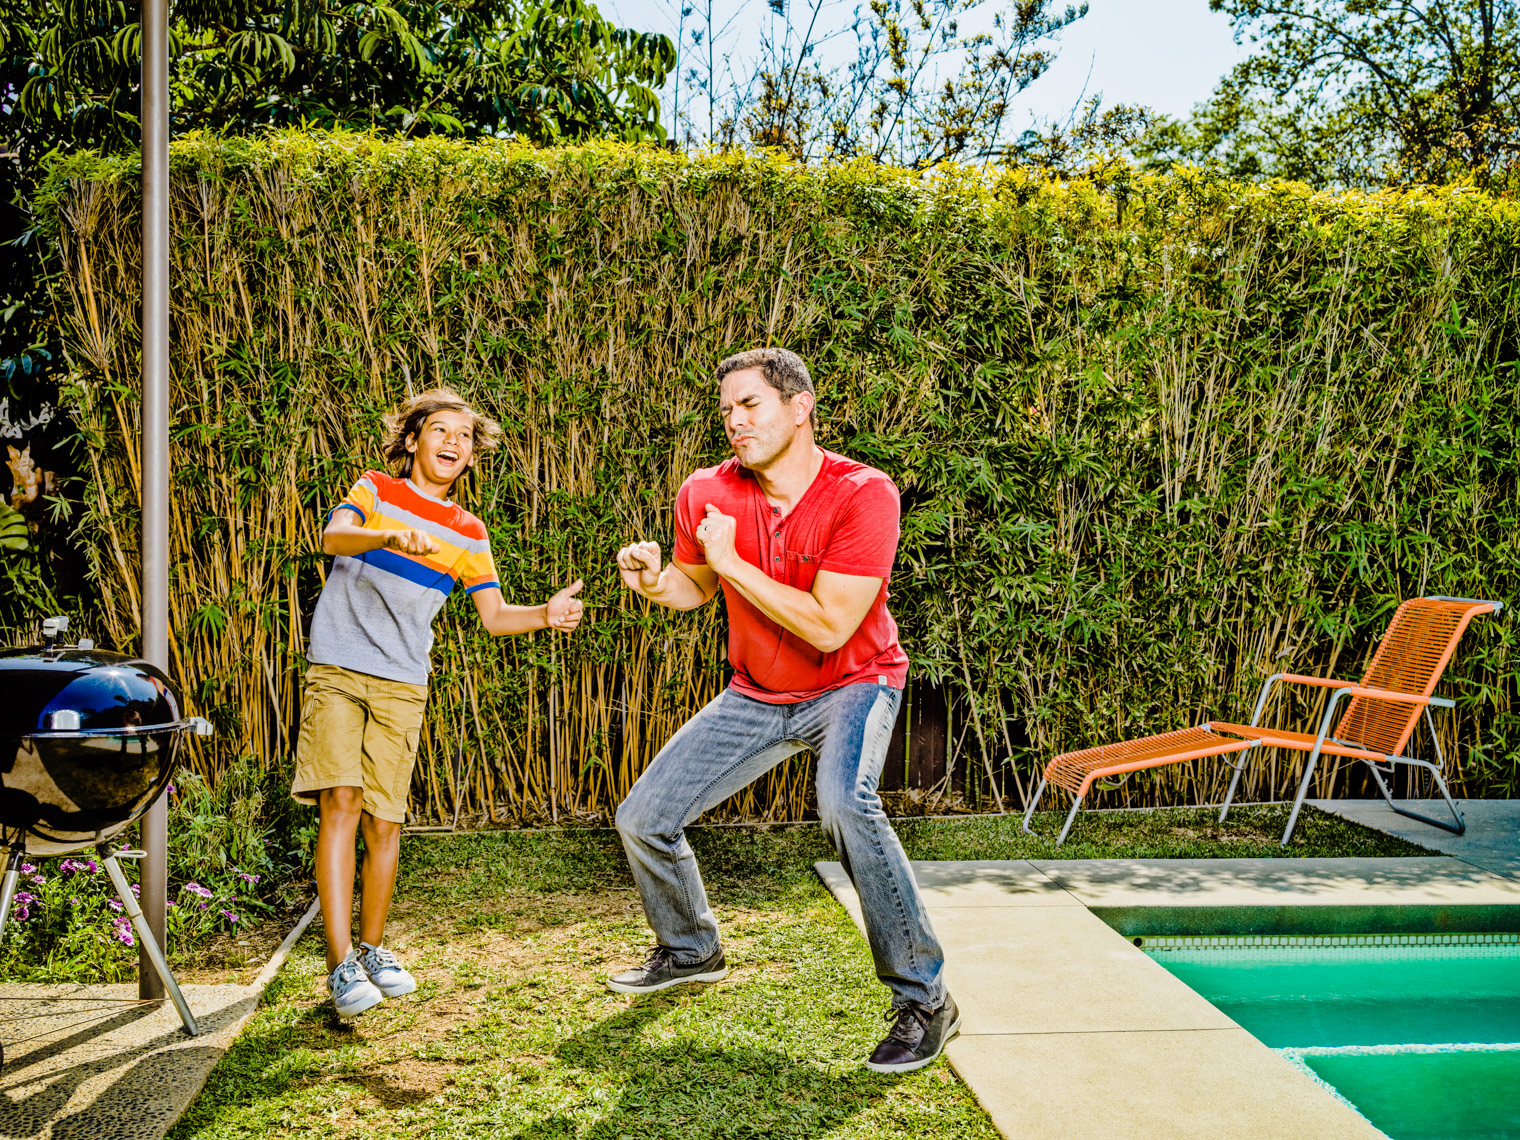 Los Angeles Photographer | Dana Hursey Photography | Quirky Photography | Dance Like a Dad 2